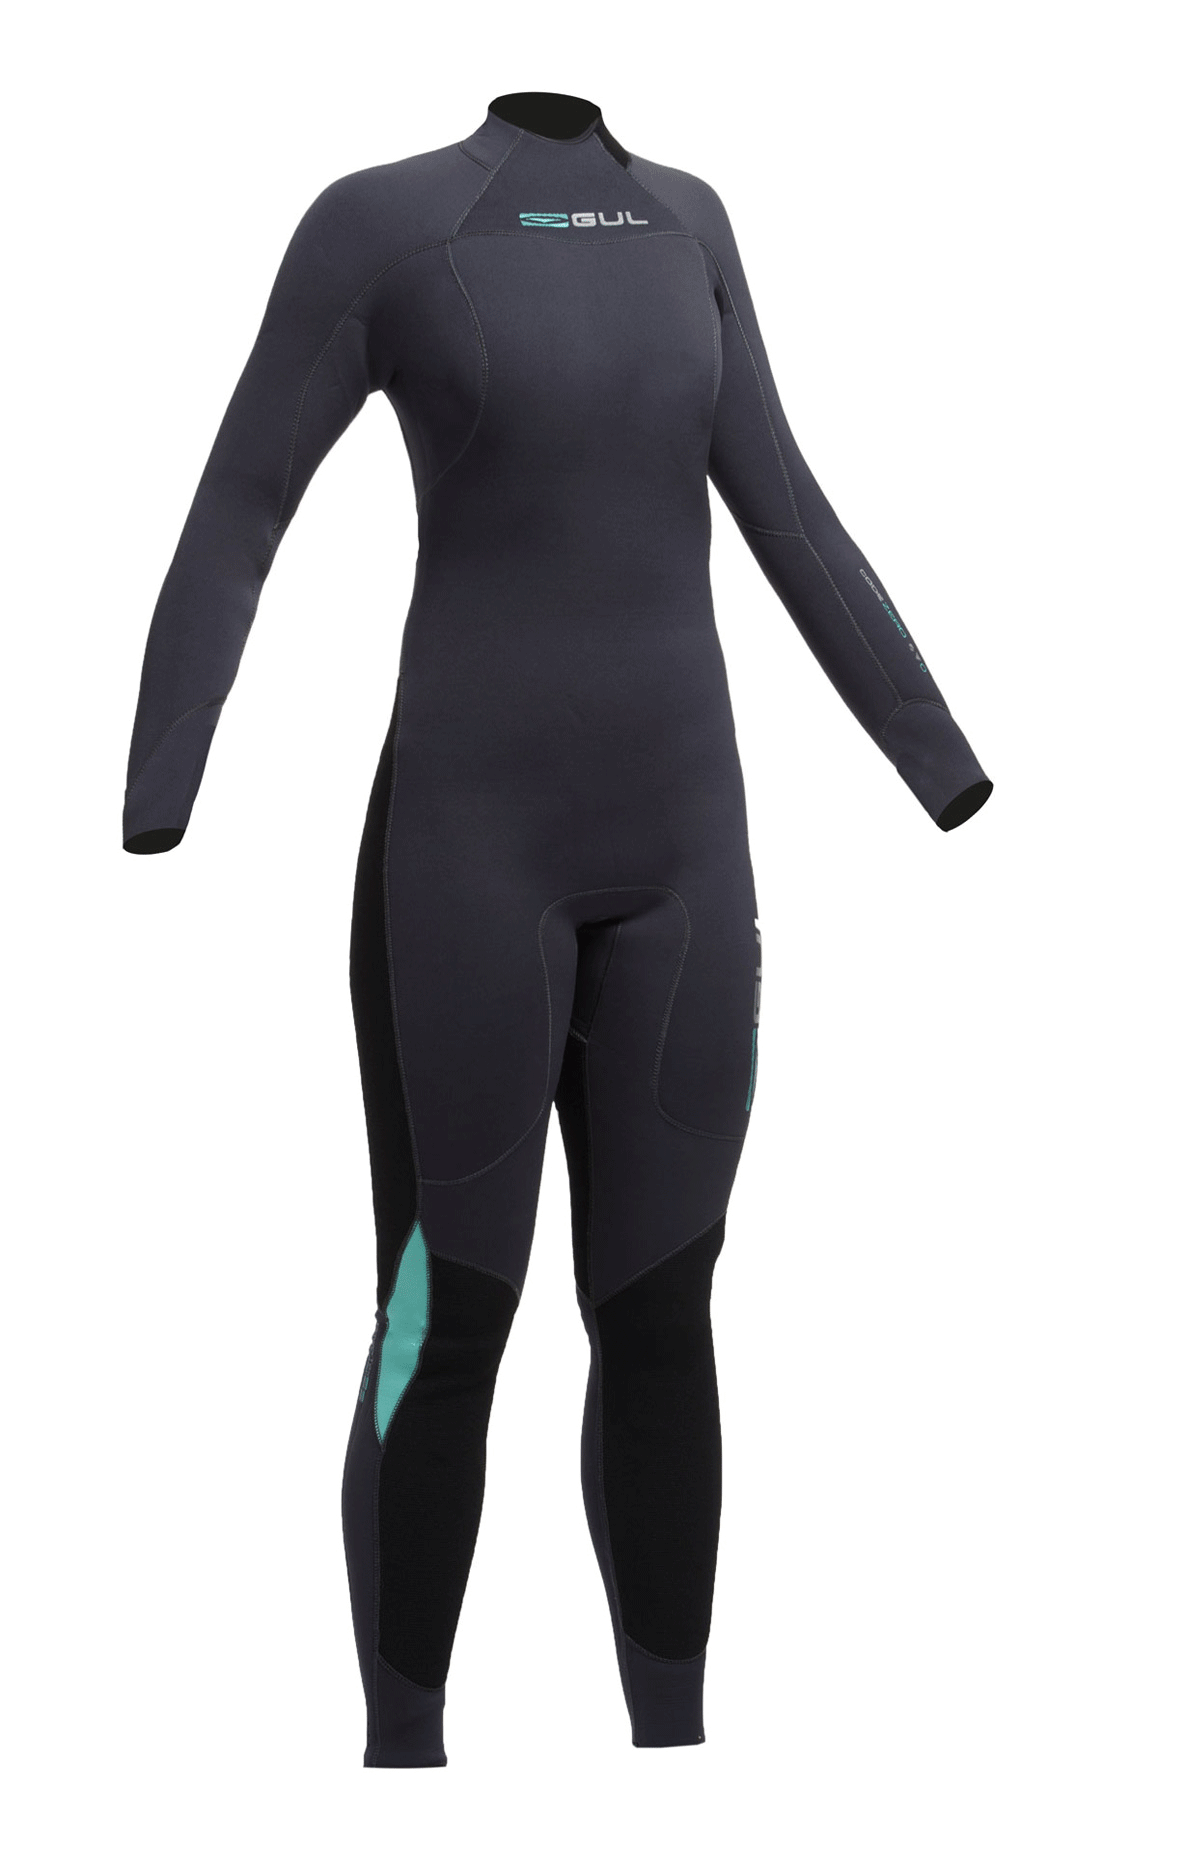 Gul Code Zero Ladies 4/3mm Bs Wetsuit   Cz1202-B2